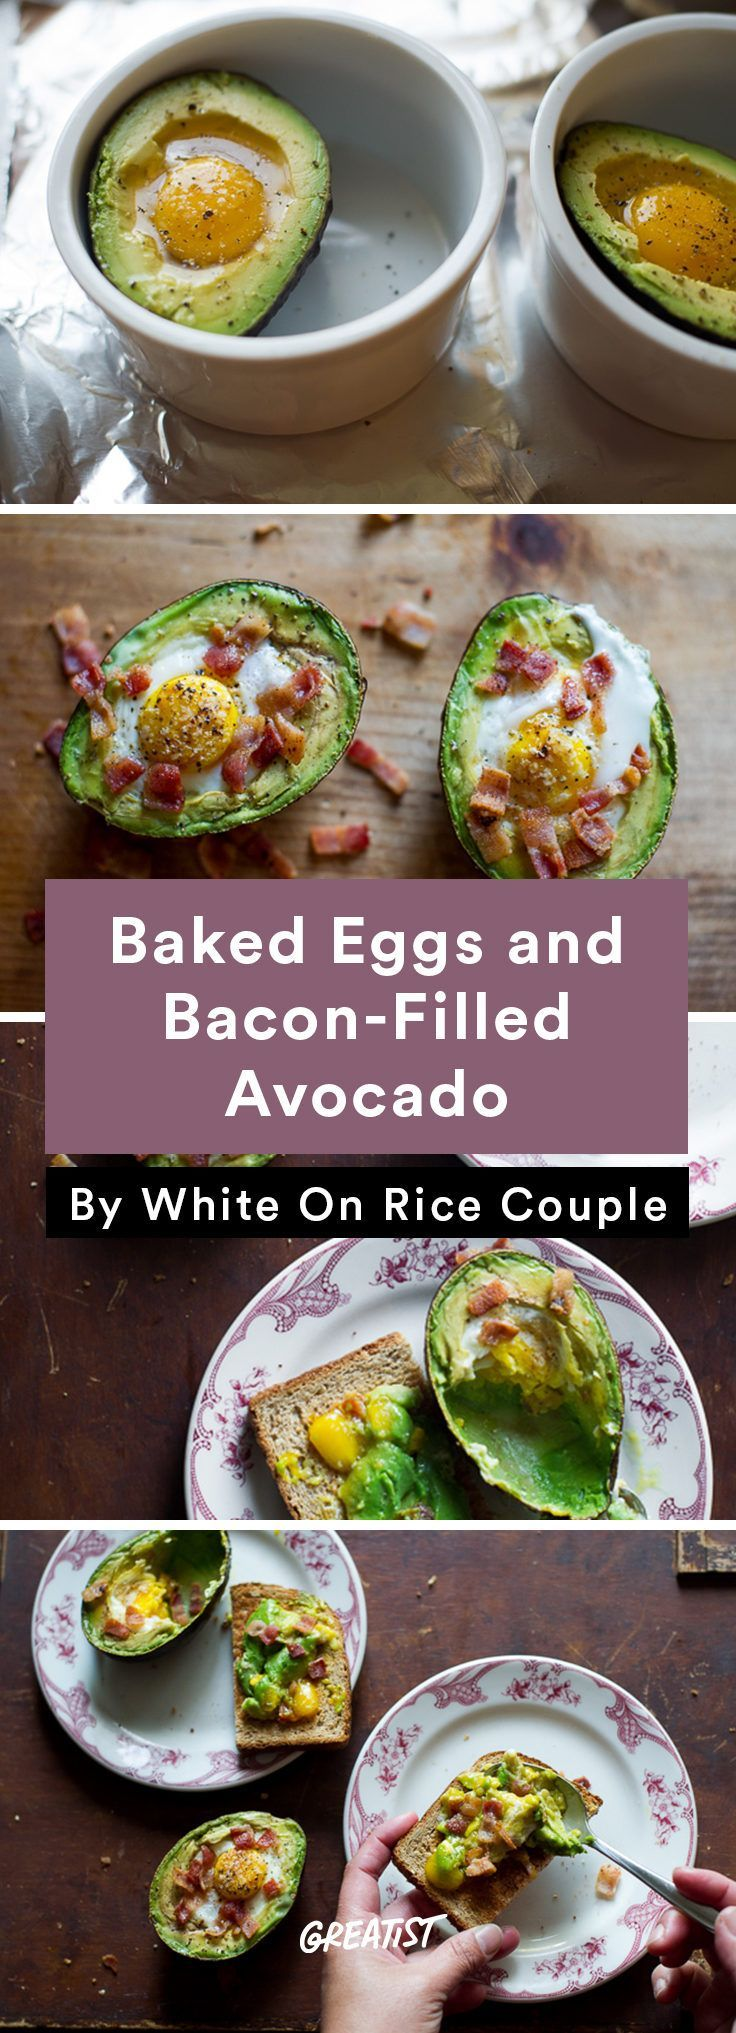 tuffed avocados are the easiest way to pack one bite with as many good-for-you ingredients as possible, without sacrificing flavor. Whether you're looking for a gateway vessel for getting comfy around unique combos (like Thai tuna or chickpea and Tamari salad) or in the market for a simple avocado toast upgrade, these 11 recipes are ripe for the making. Forget toast—it's time to stuff your favorite food. #healthy #recipe #stuffedavocado #avocado